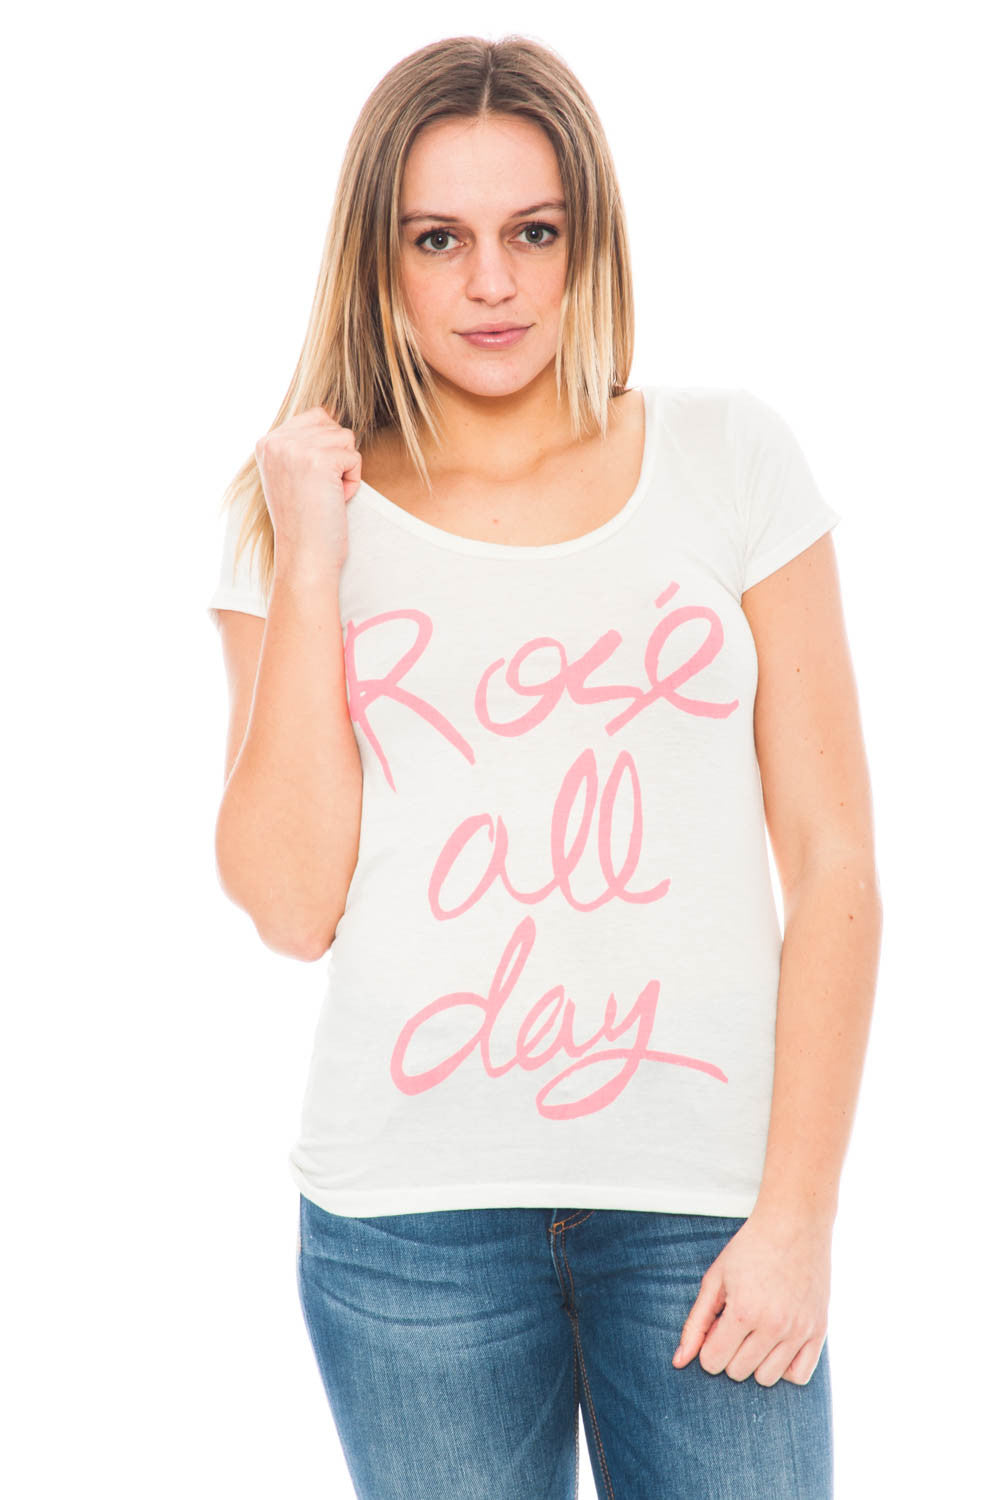 Shirt - Rose All Day Tee